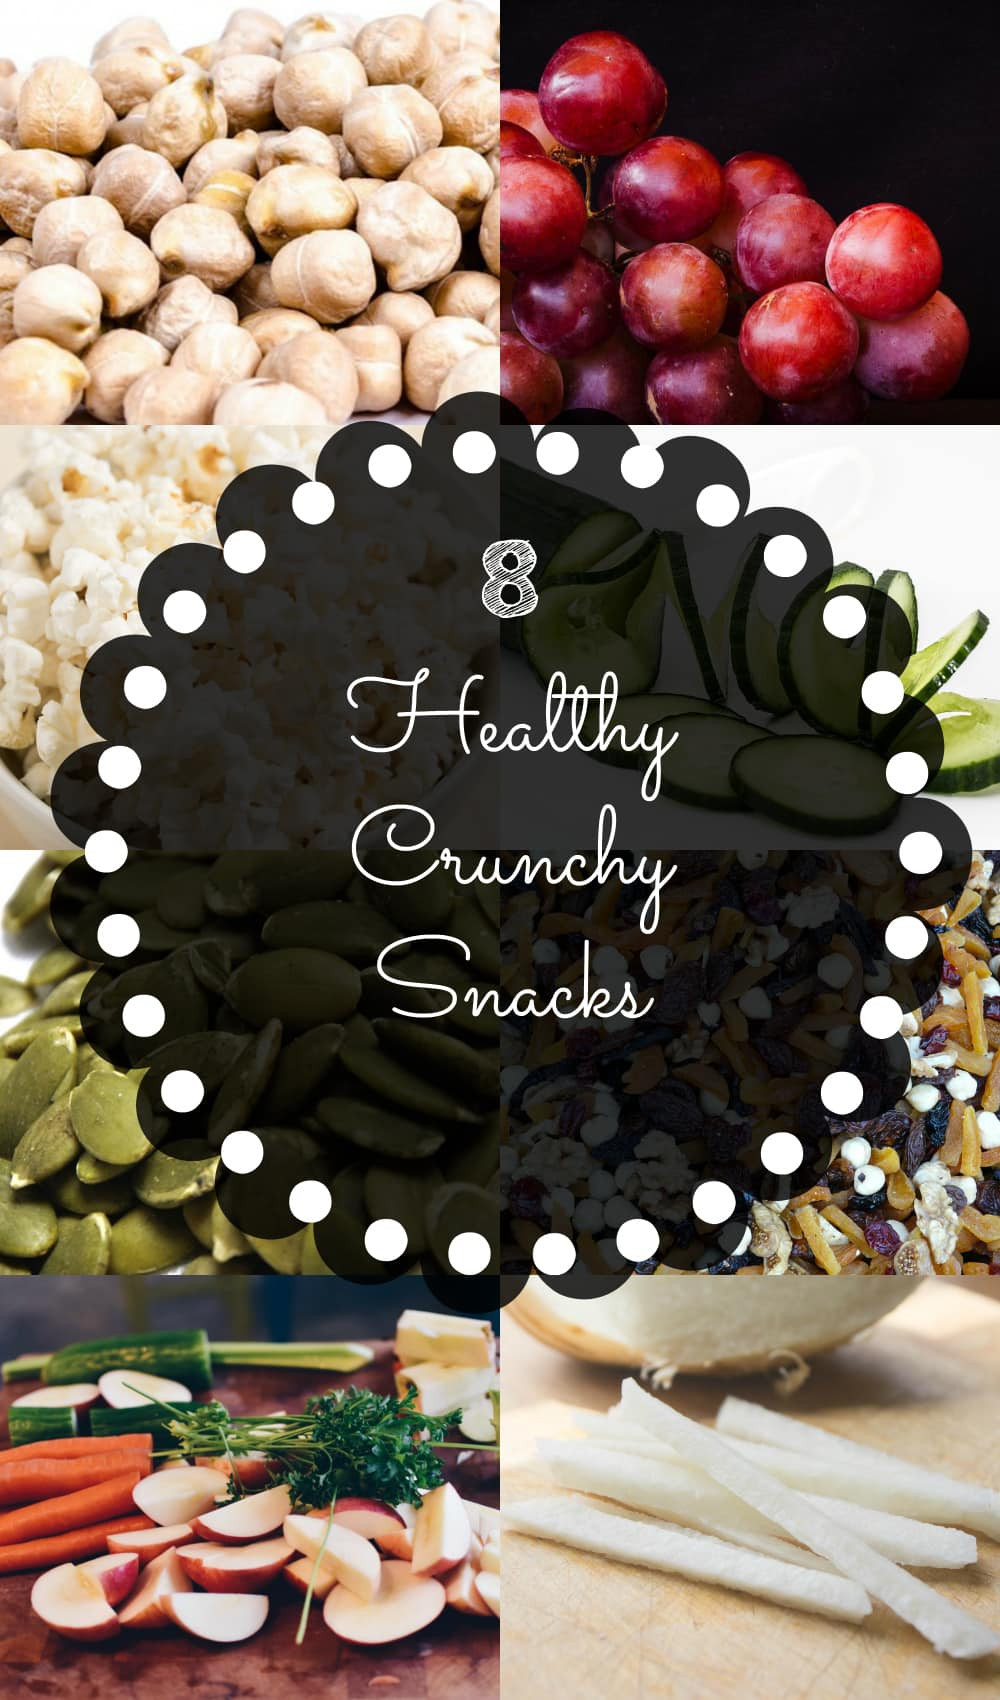 Healthy Crunchy Snacks  8 Healthy Crunchy Snacks Your Whole Family Will Love